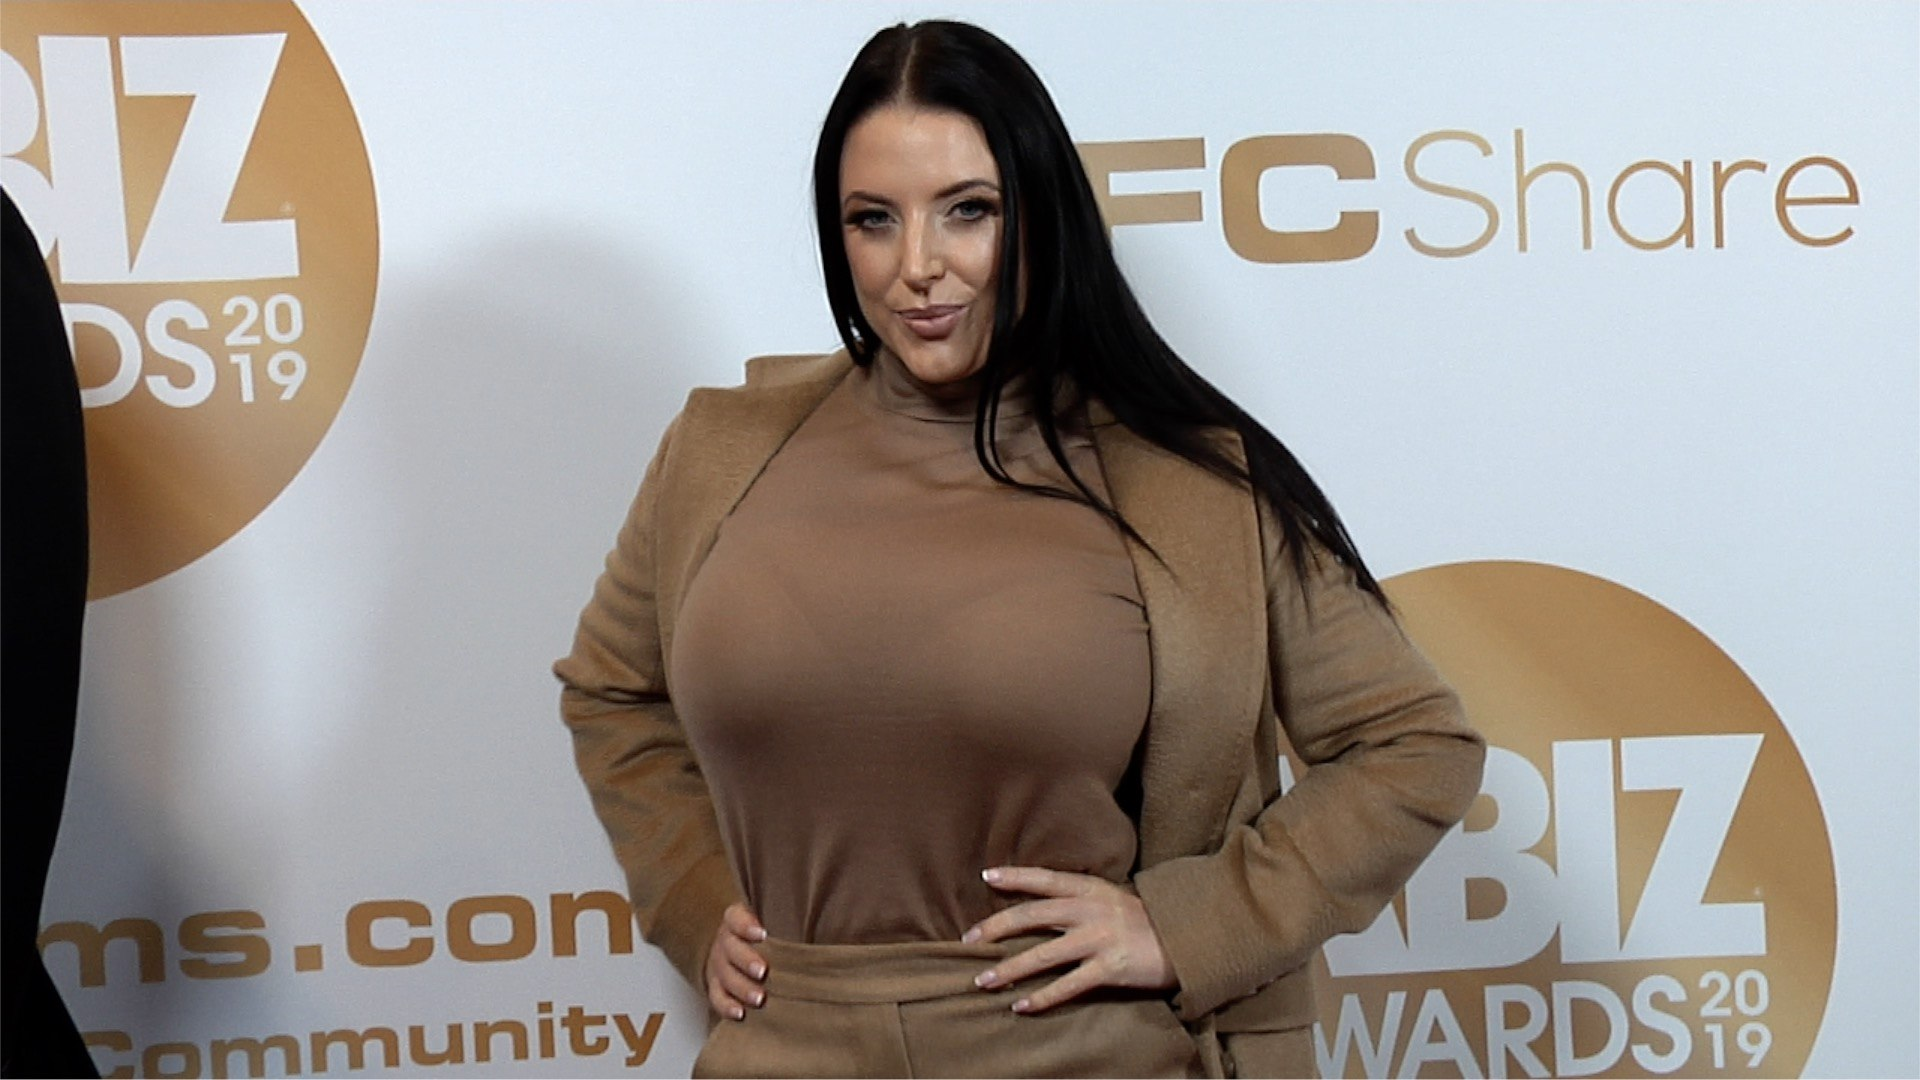 The Latest Angela White Videos On Dailymotion